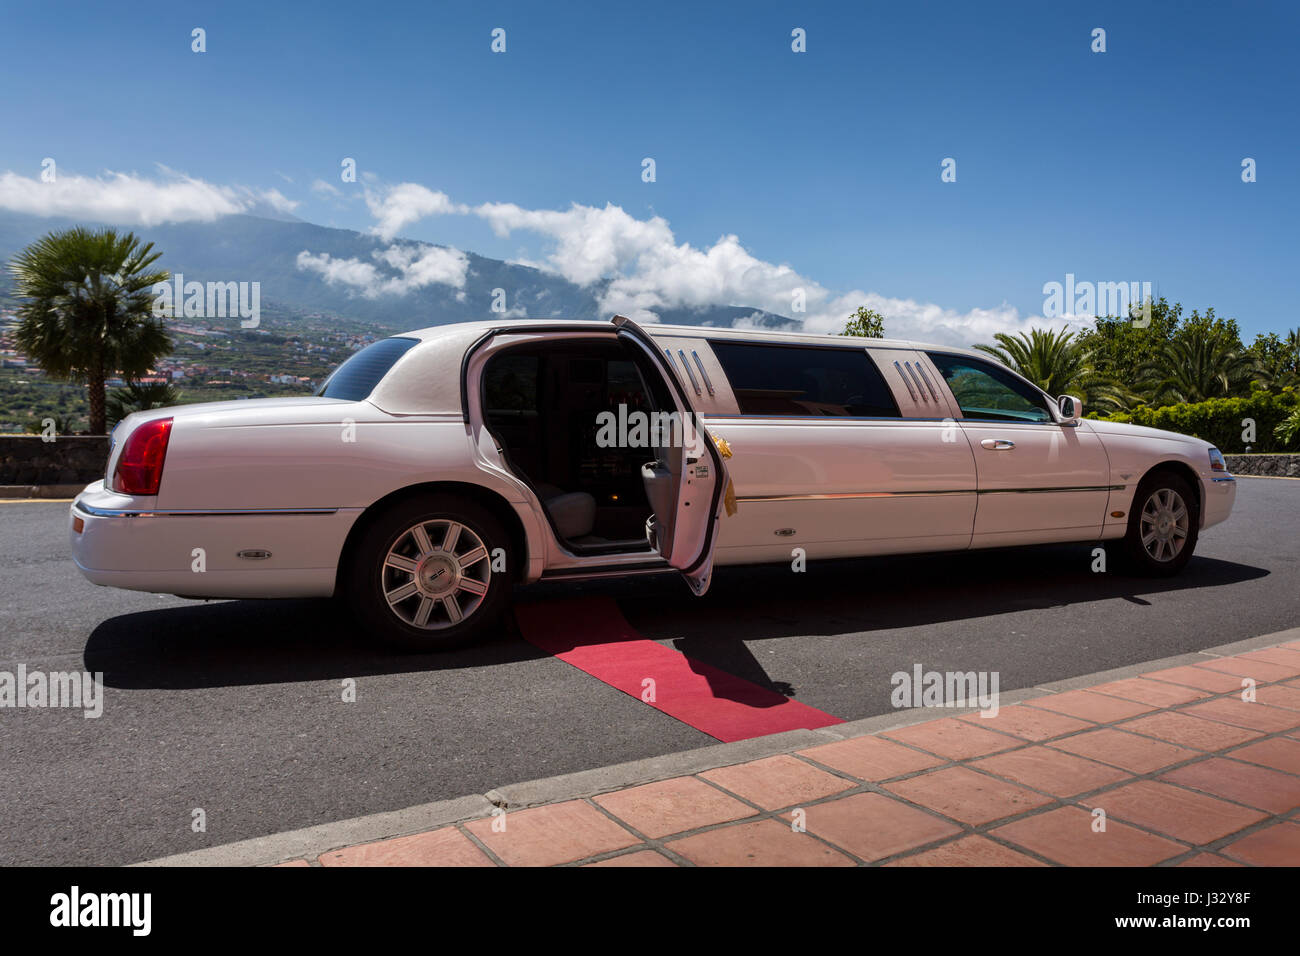 white-lincoln-limousine-car-decorated-fo